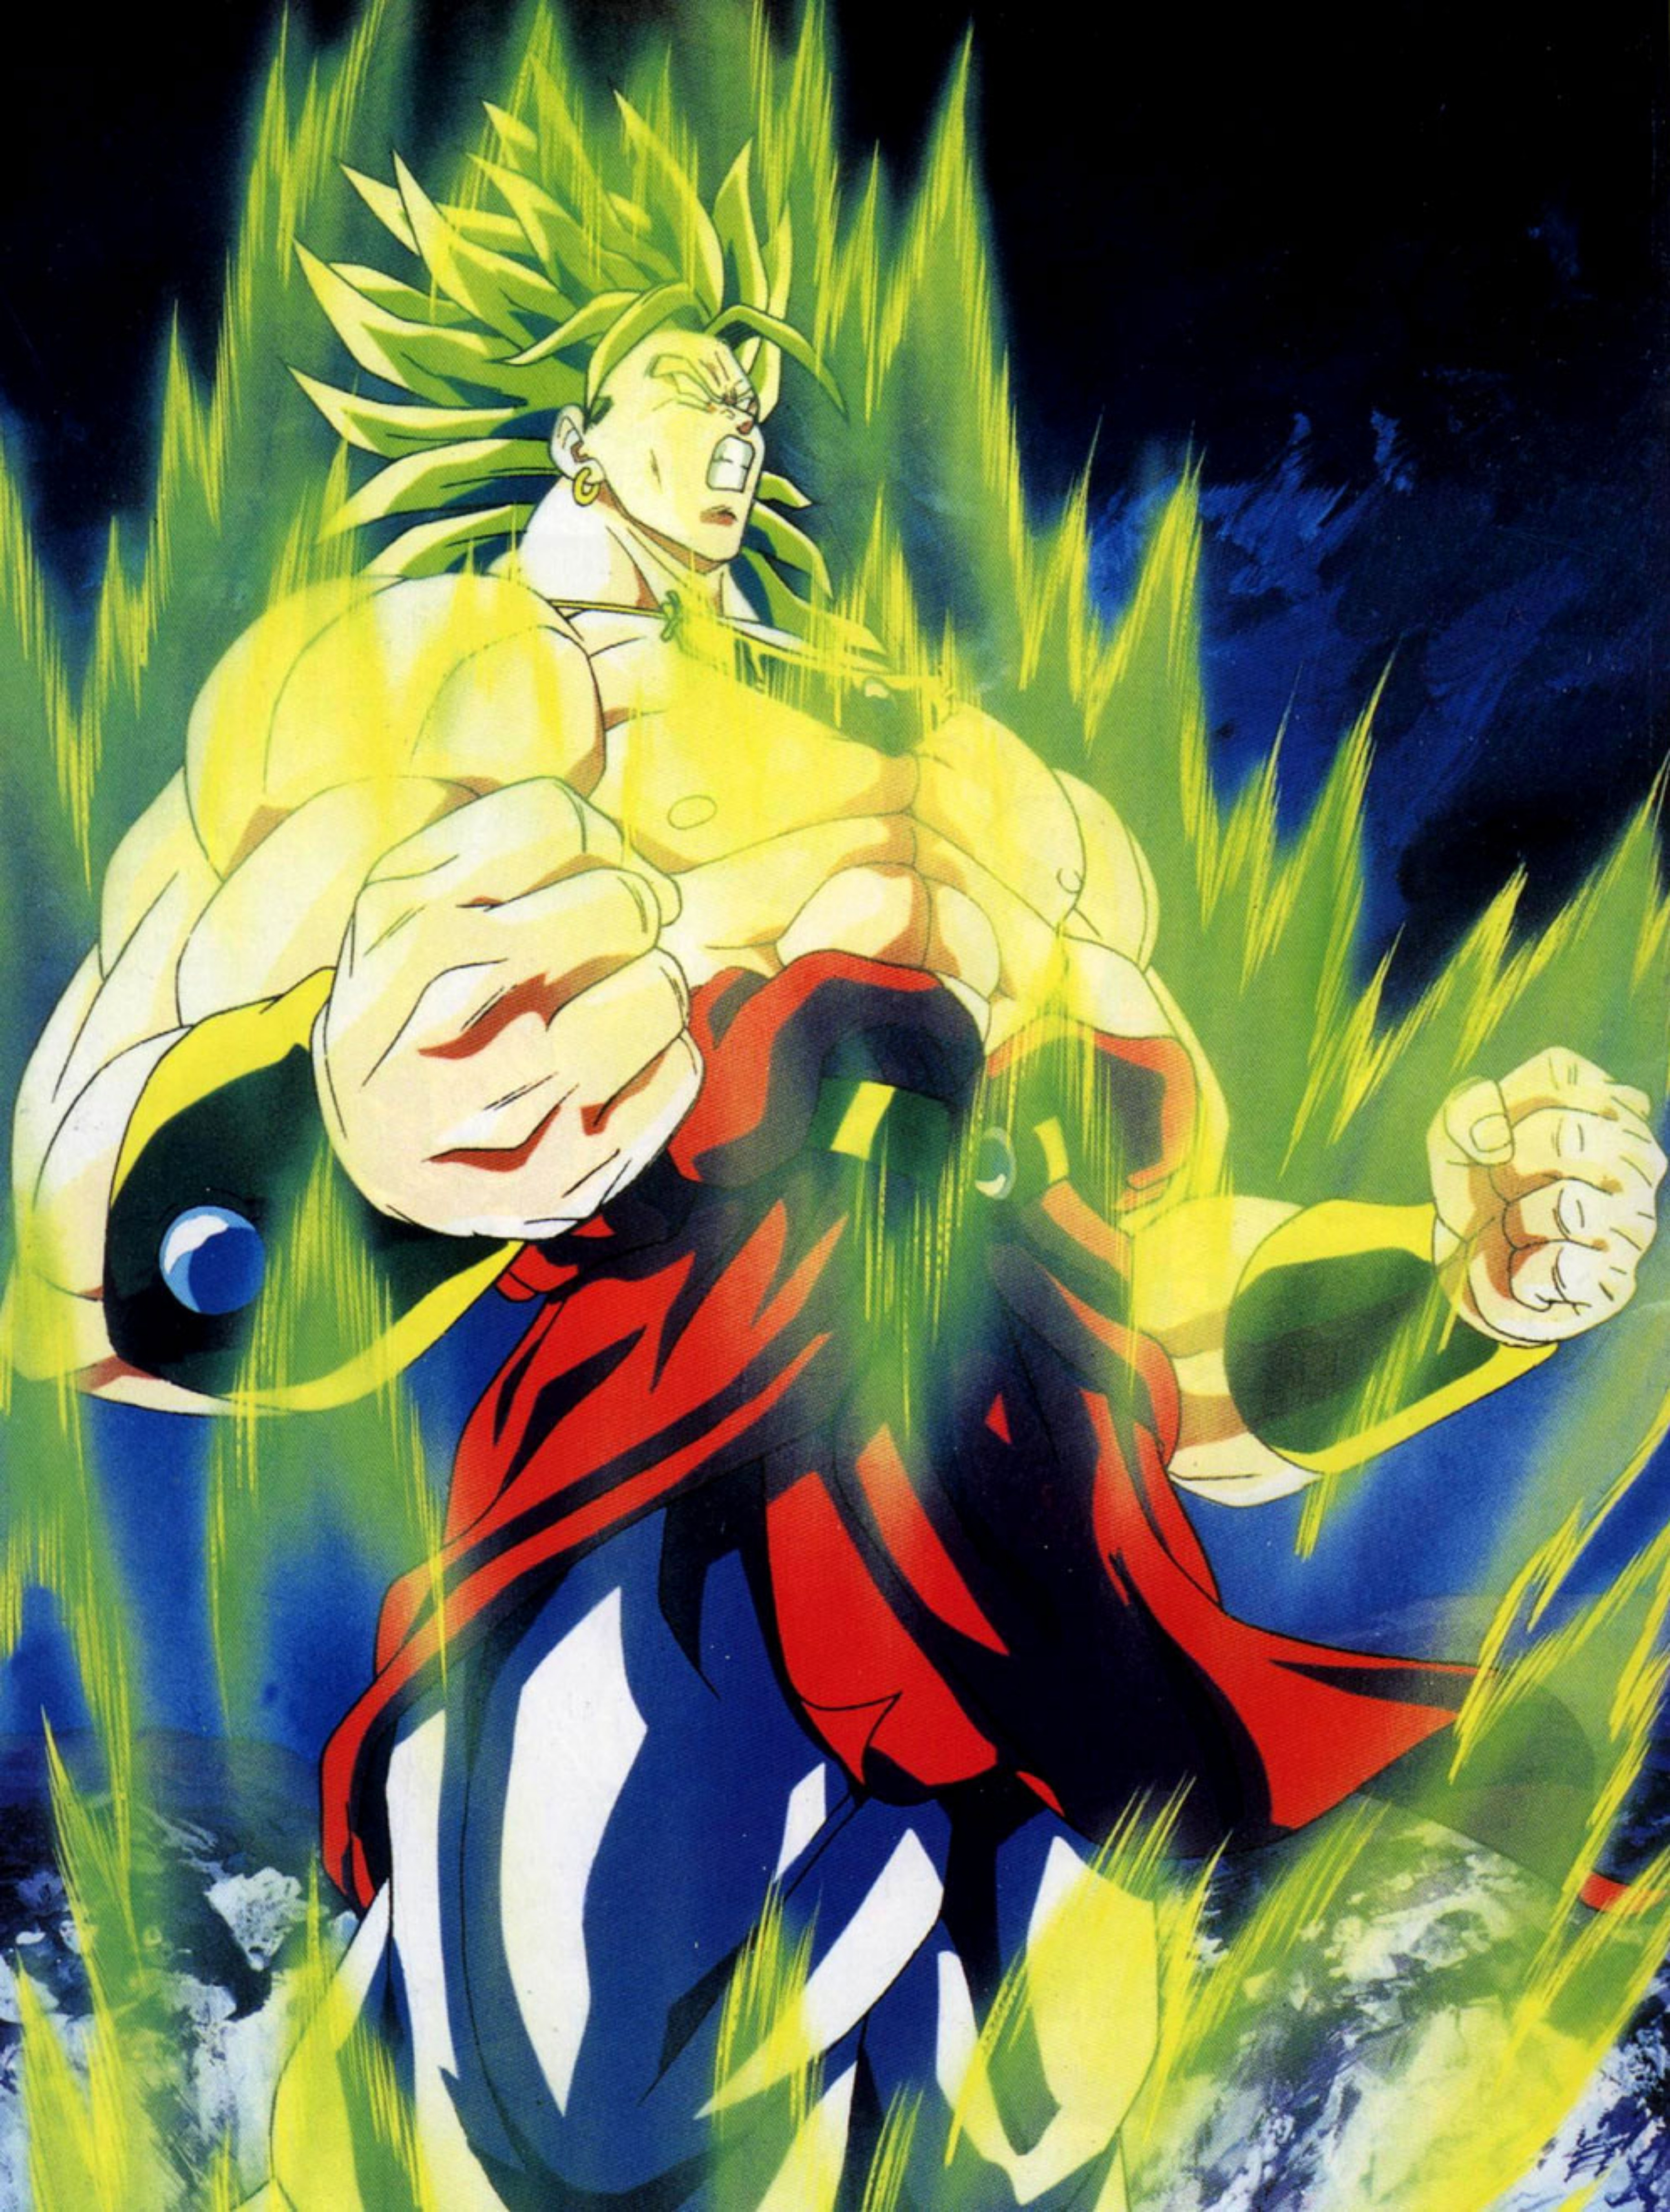 Dragon Ball z Kai Goku Super Saiyan 1000 Games Legendary Super Saiyan